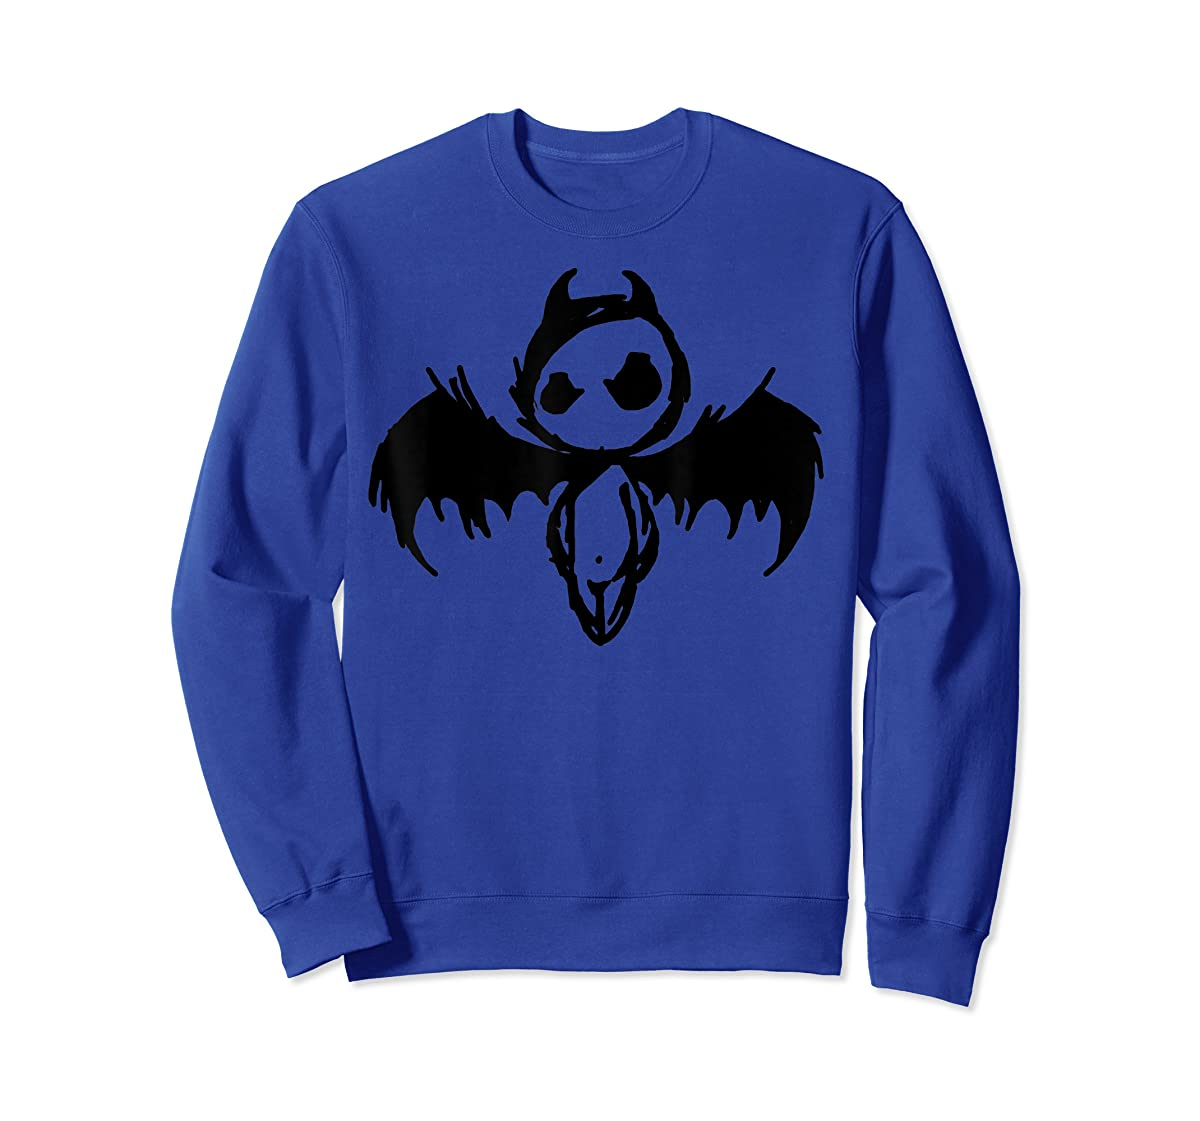 Cute Demon Vintage Couple Matching Halloween Party Costume  T-Shirt-Sweatshirt-Royal